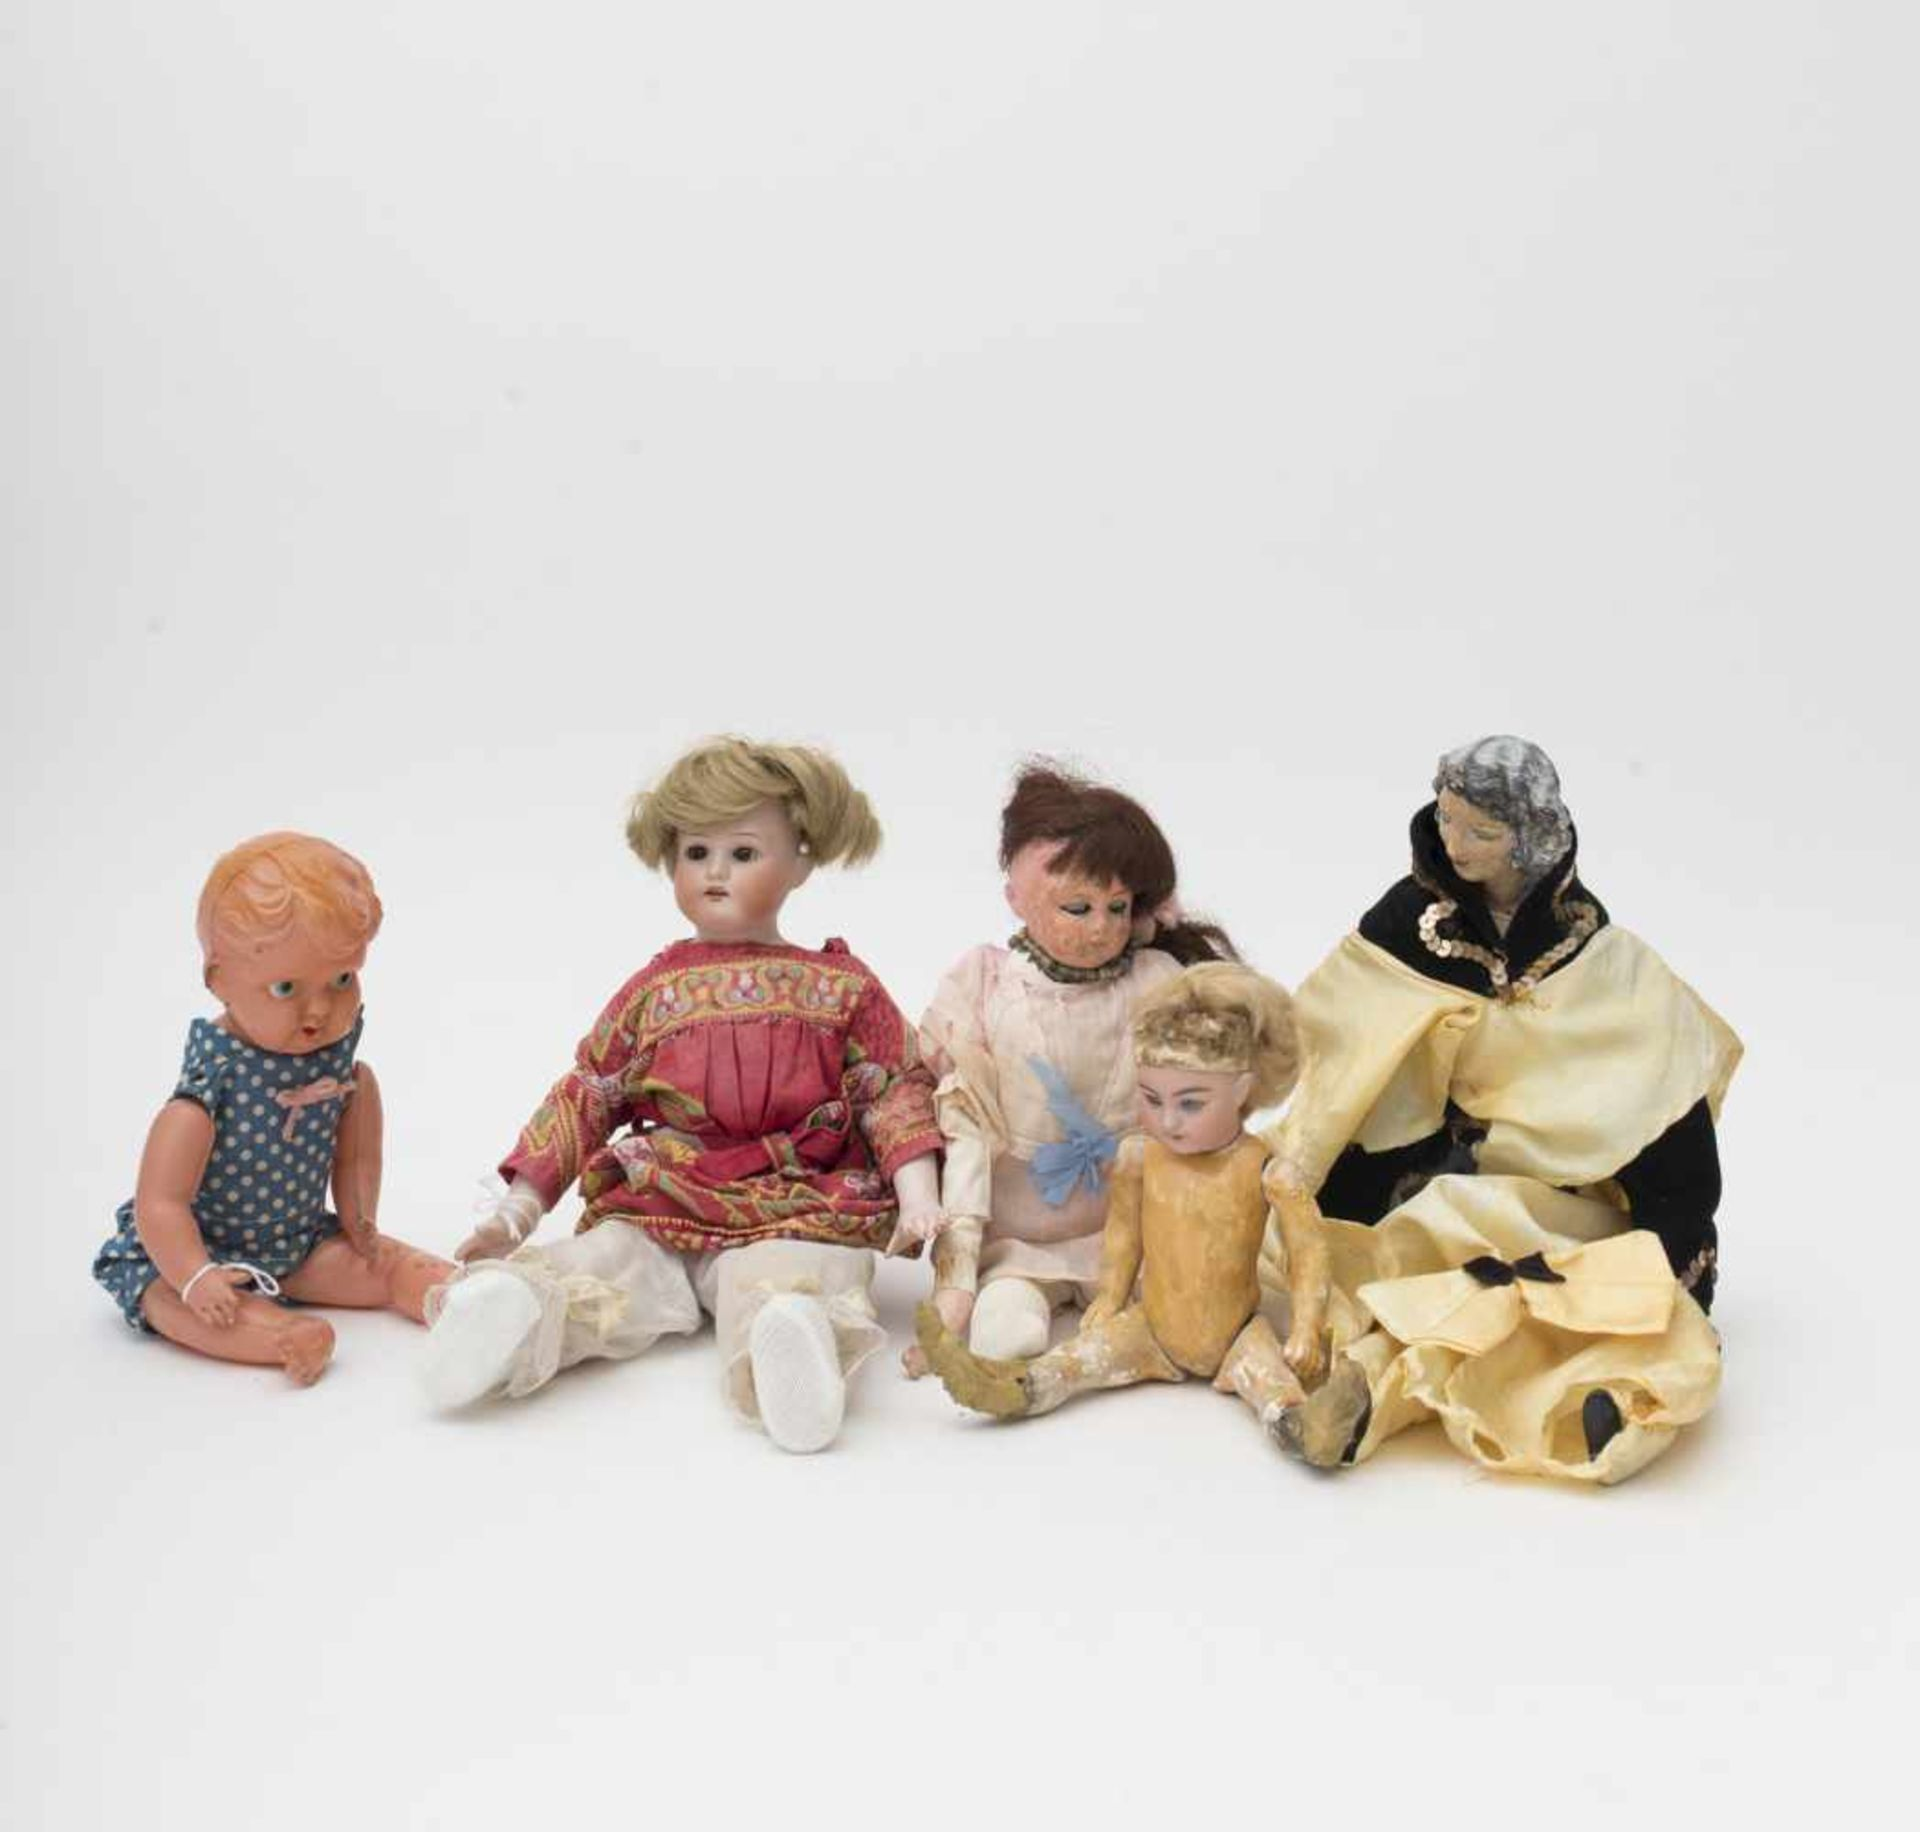 Set of 5 dolls Two with a biscuit head and head plus torso respectively, SIMON HALBIG and A.